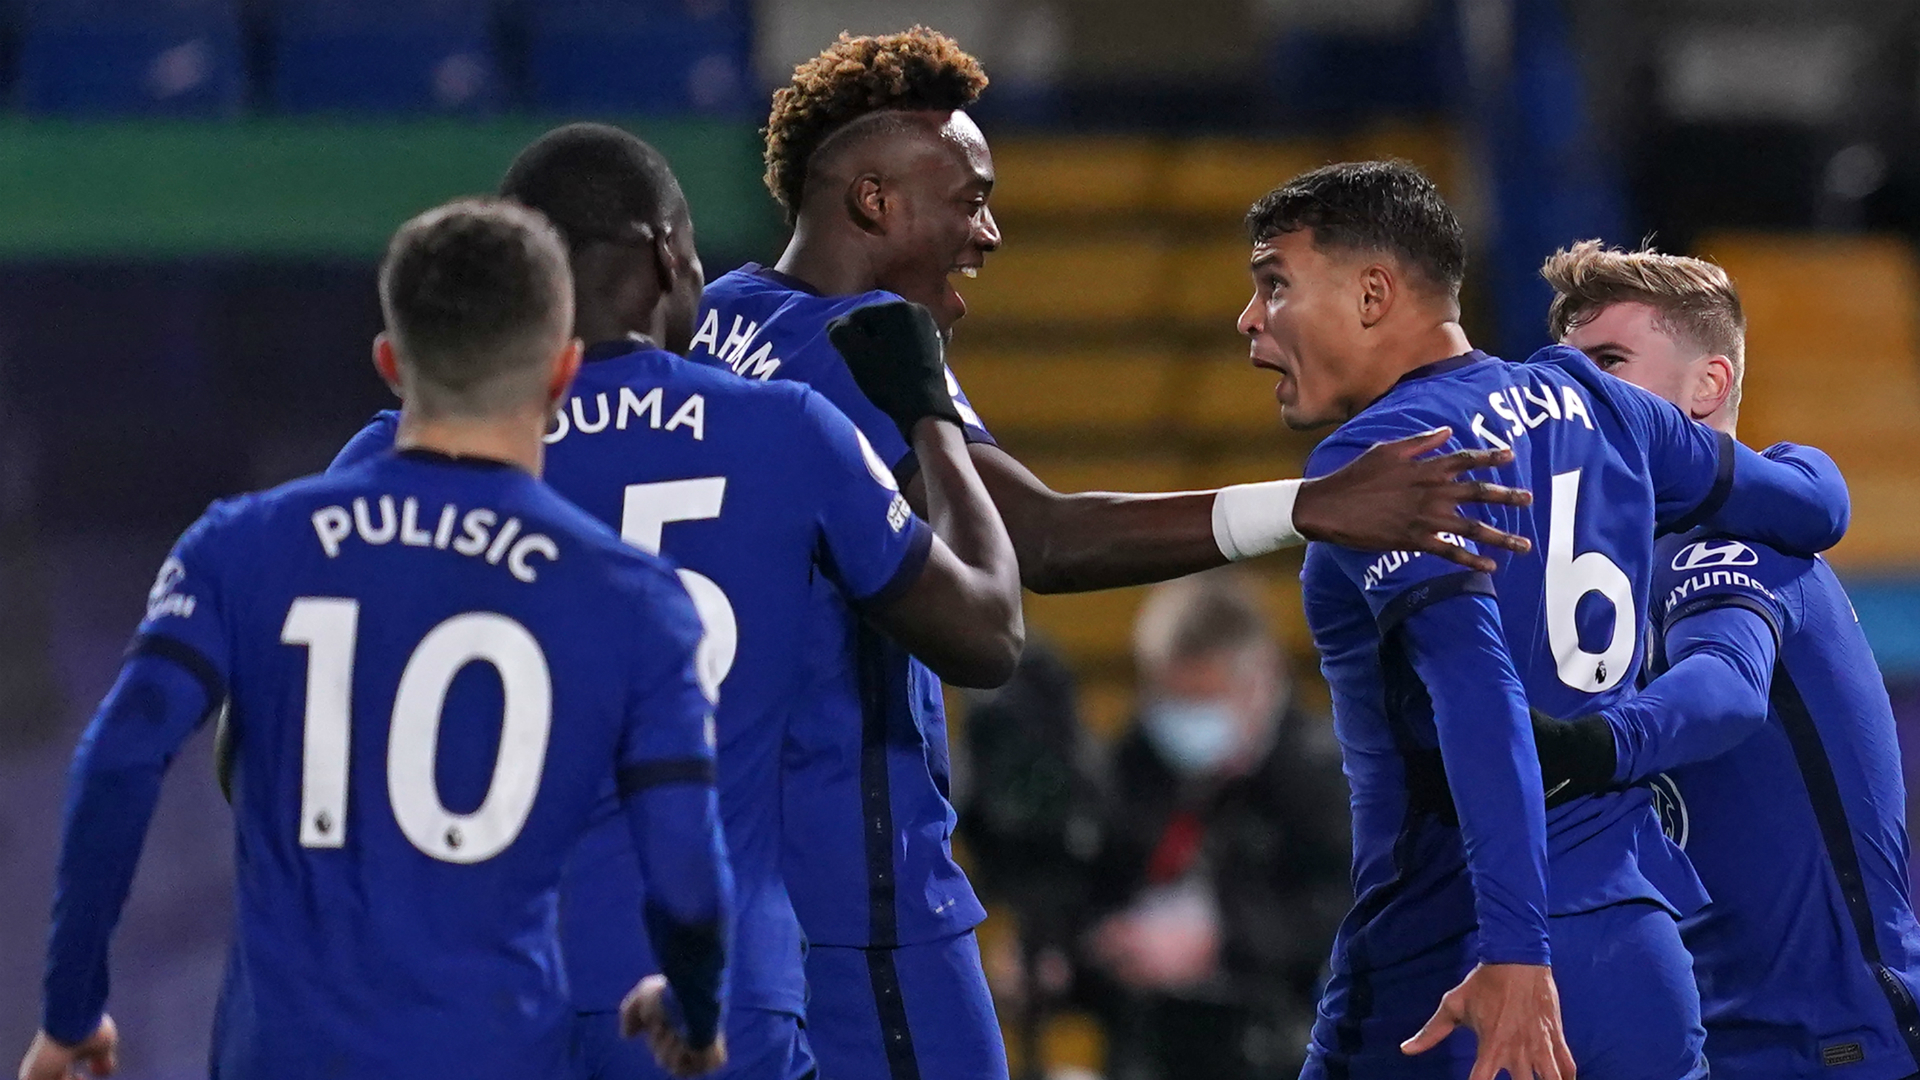 Lampard reveals Chelsea stars will practise celebrations after ban on hugs